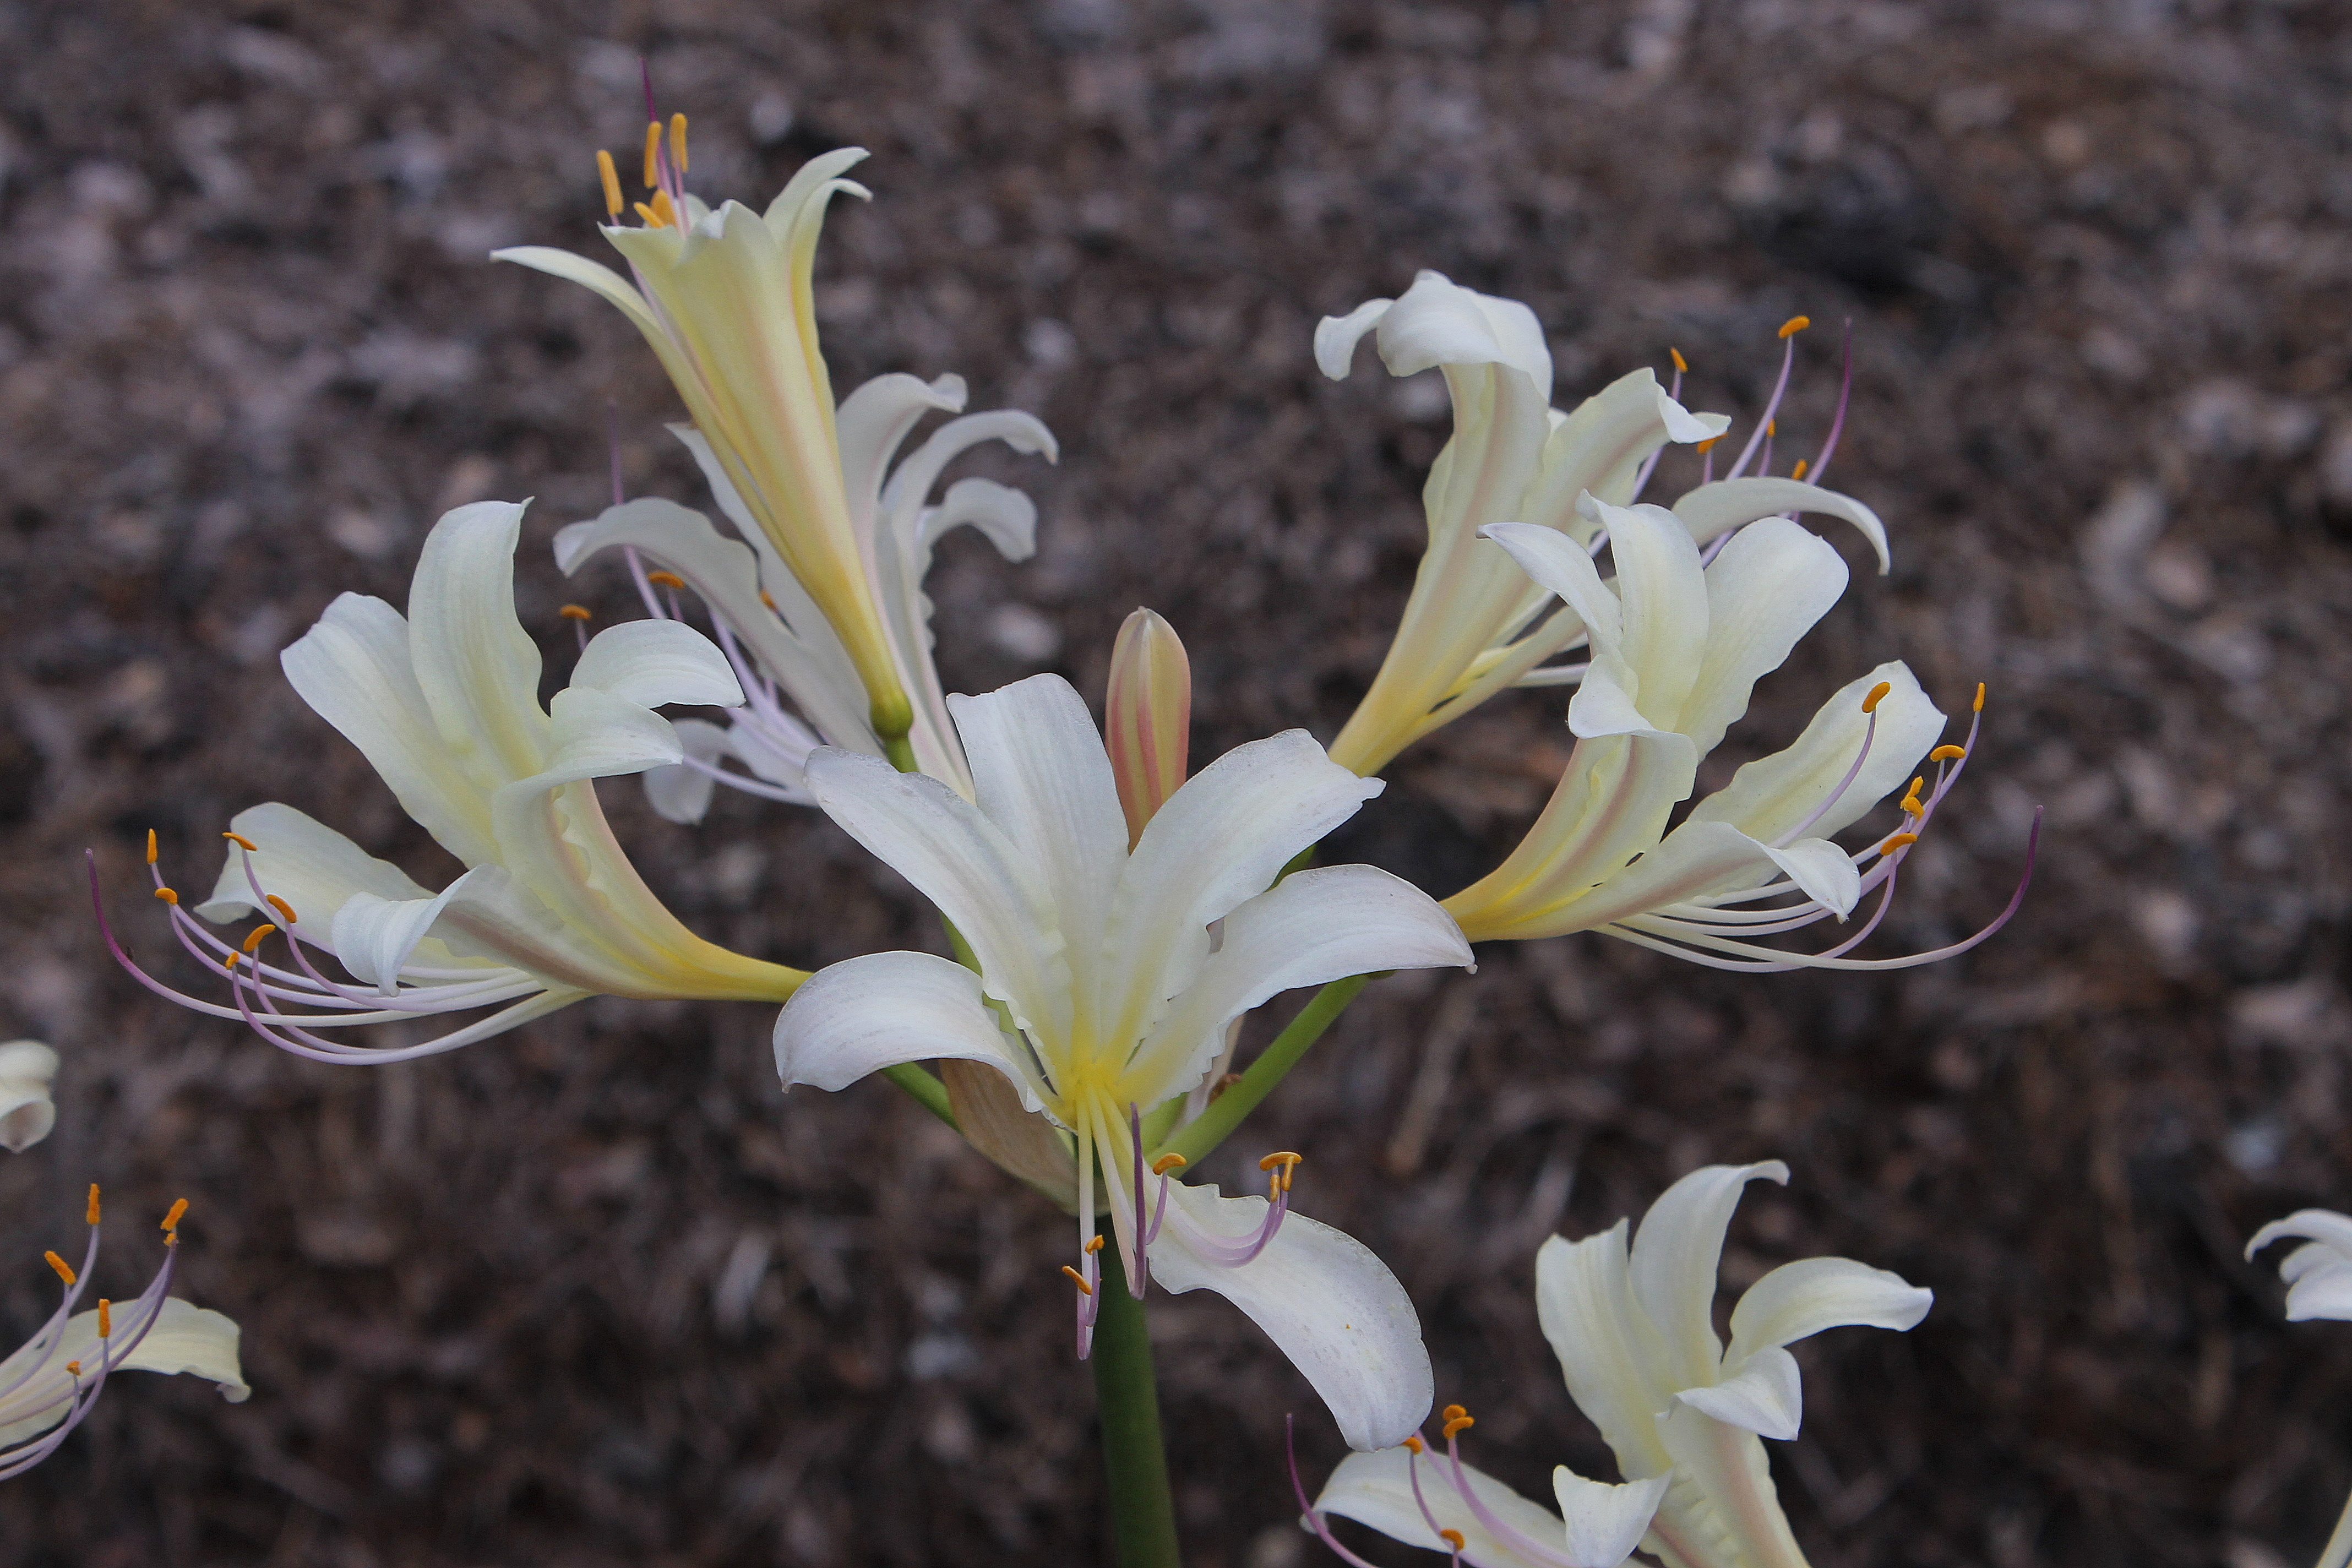 Lycoris x sprengensis 'Yuhbotaru' @ JLBG - a Komoriya Nursery introduction of a cross of Lycoris sprengeri x chinensis